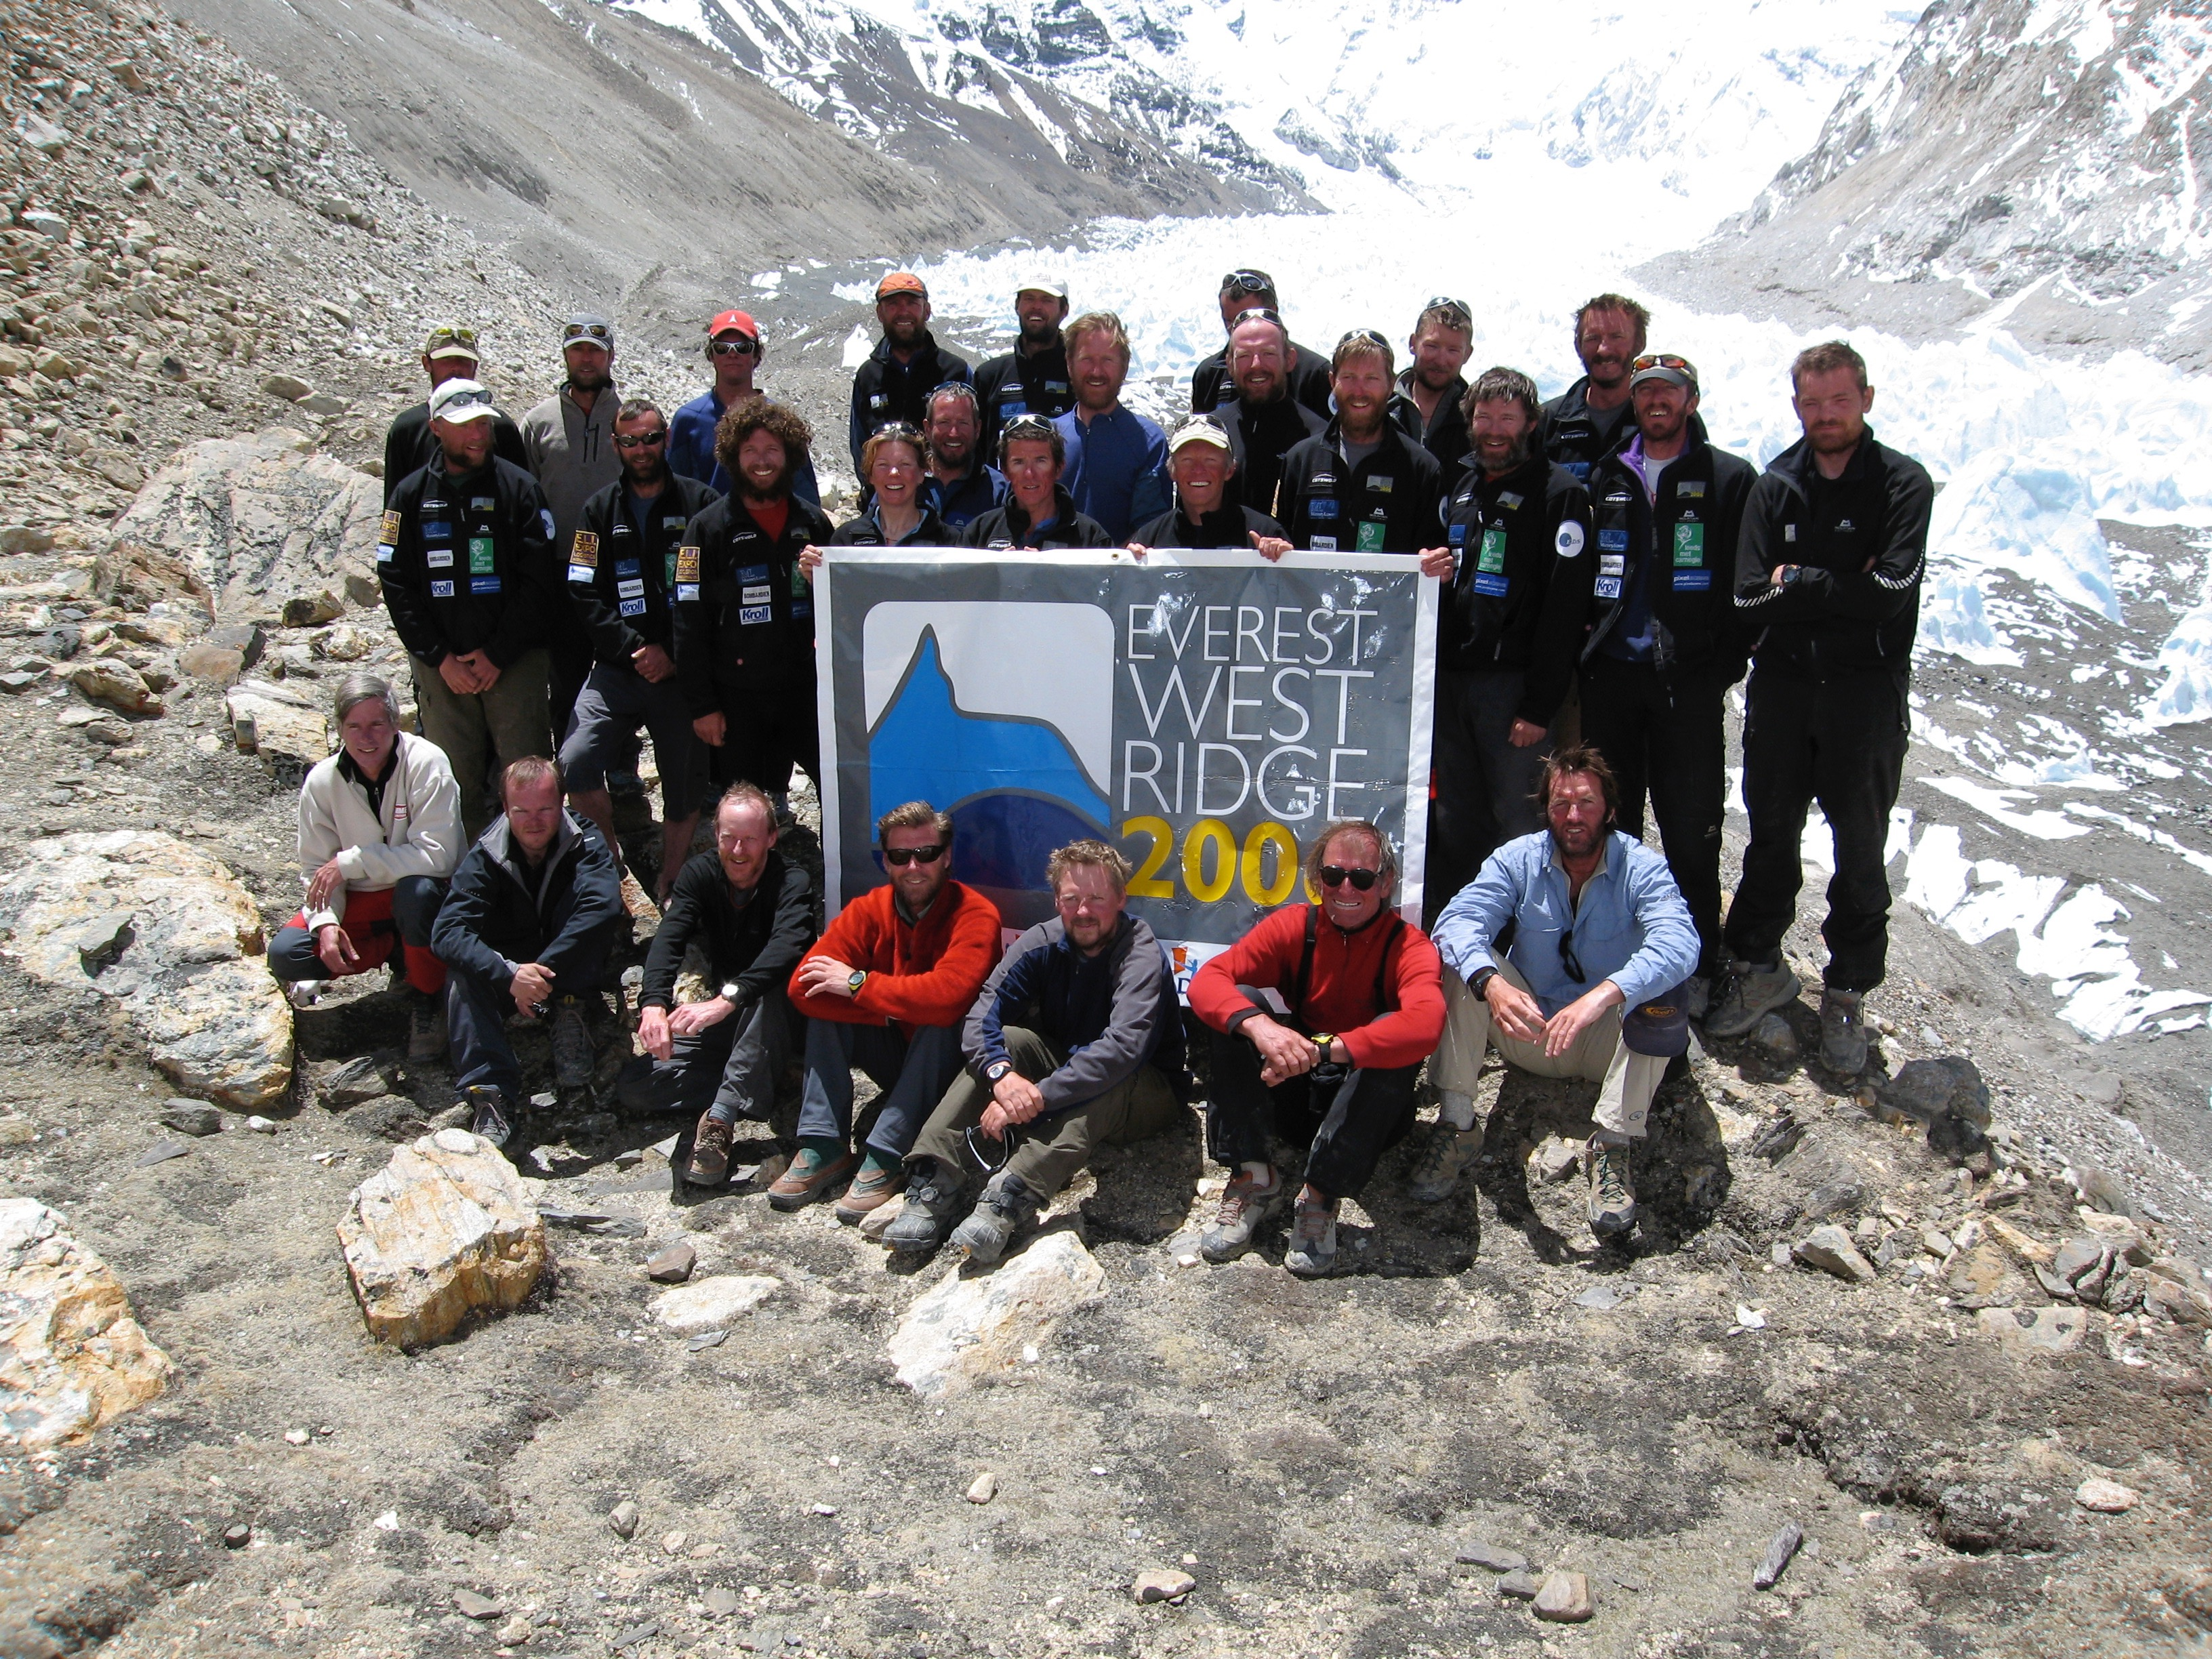 British Everest West Ridge Team